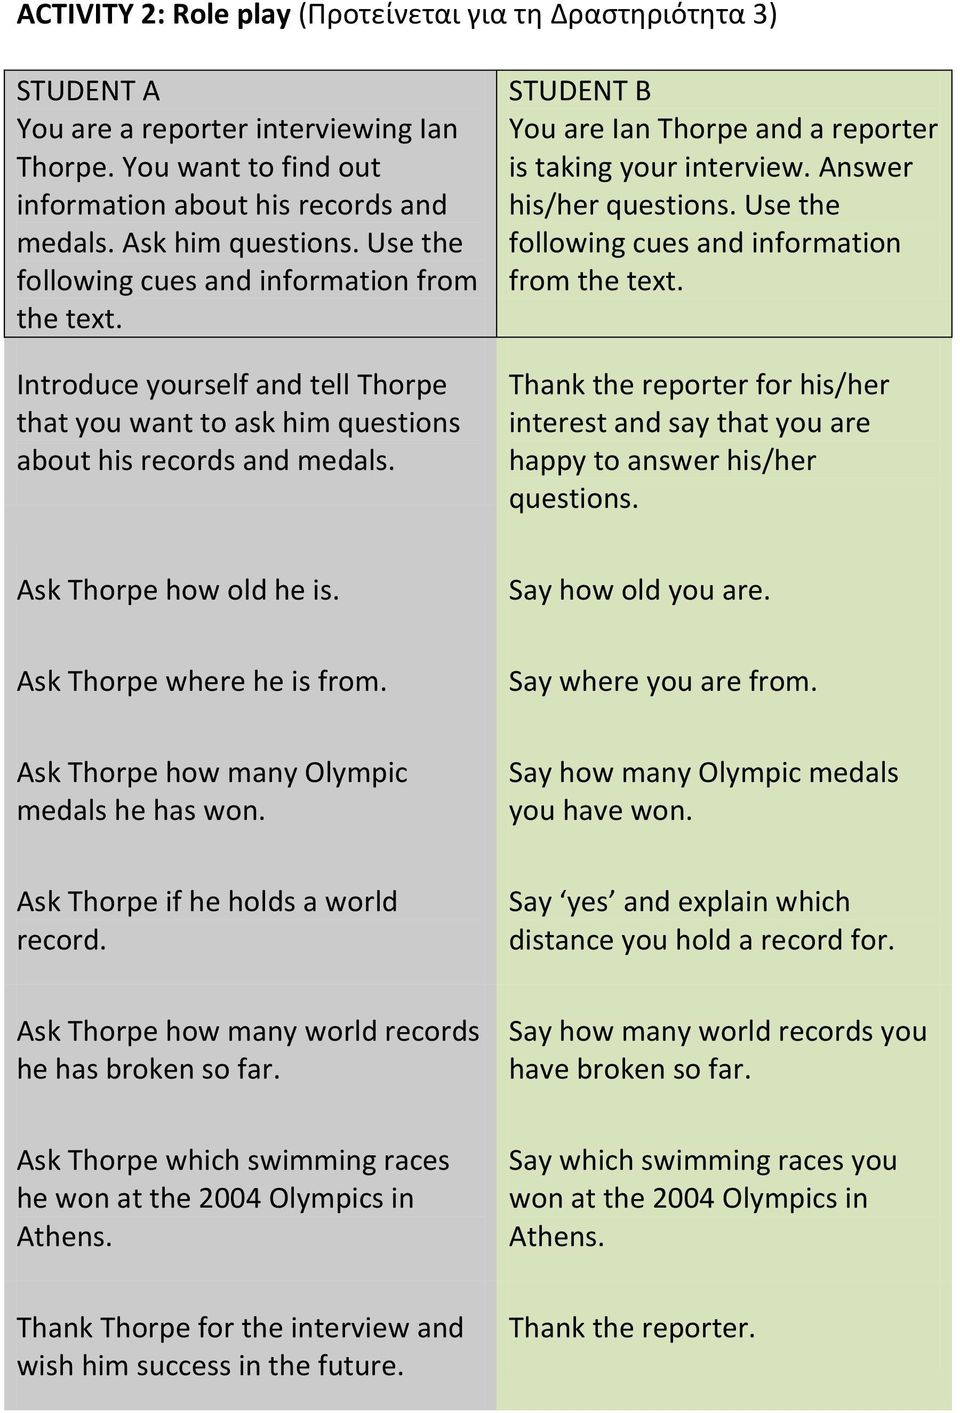 STUDENT B You are Ian Thorpe and a reporter is taking your interview. Answer his/her questions. Use the following cues and information from the text.